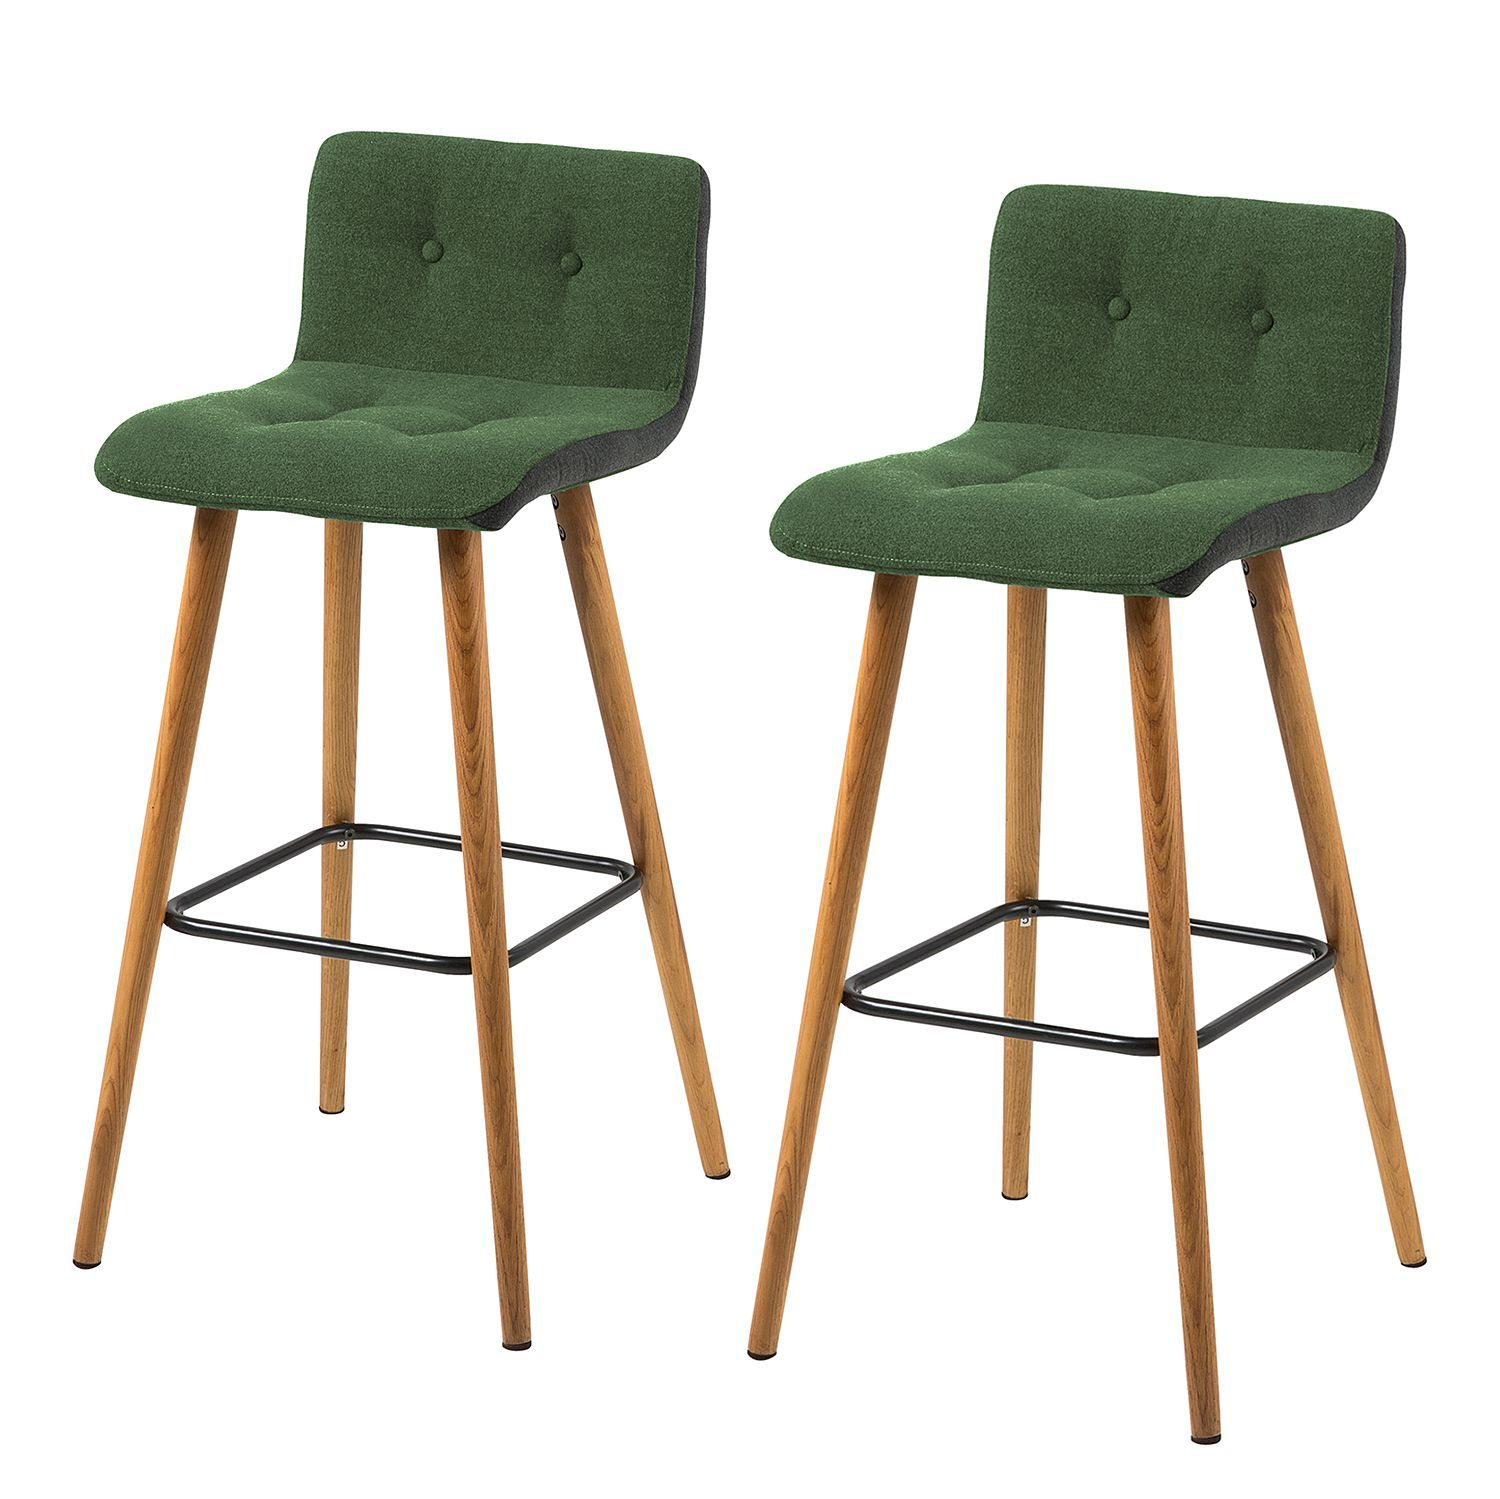 Songmics Lot De 2 Tabourets De Bar Stool Pin By Ladendirekt On Bar Möbel Bar Stools Stool Bar